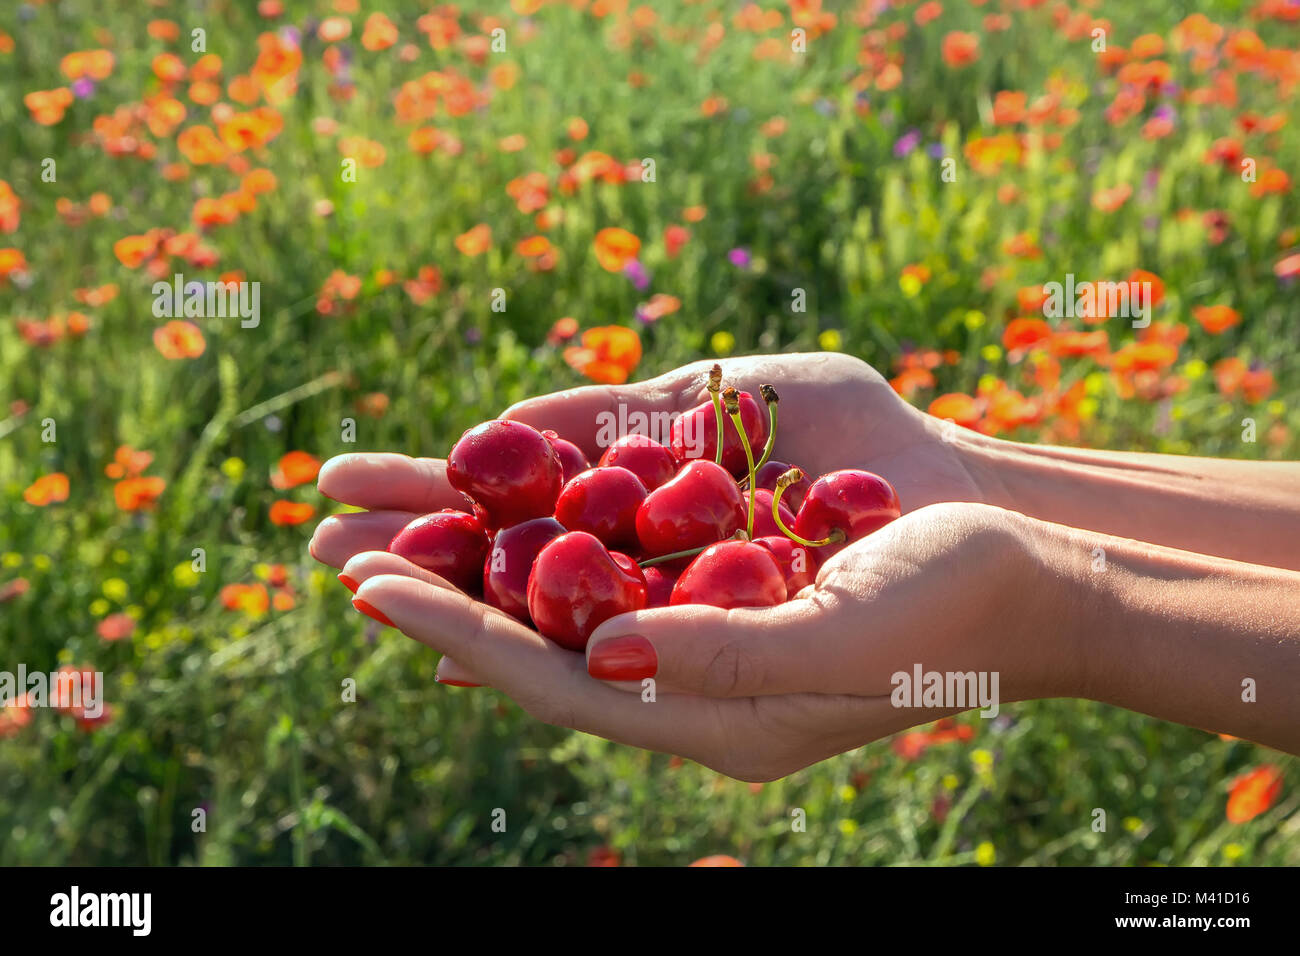 A handful of juicy berries cherries outstretched in women's hands - Stock Image